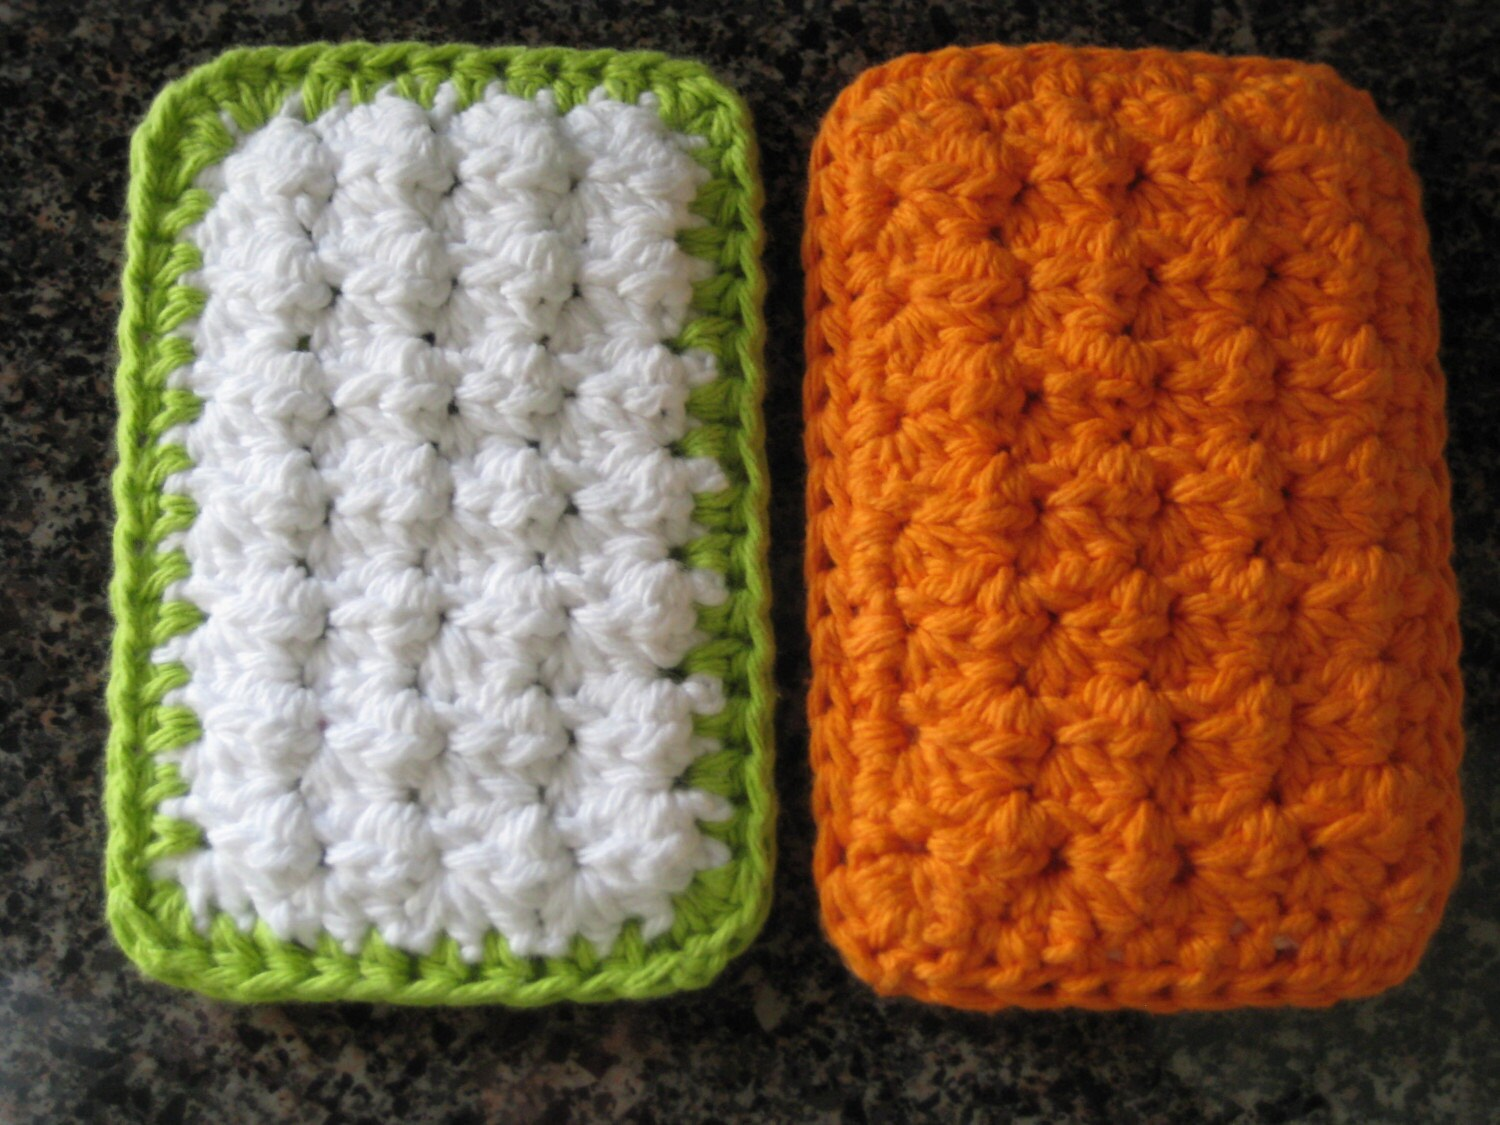 Crocheting Scrubbies : CROCHET SCRUBBIES PATTERN Design Patterns